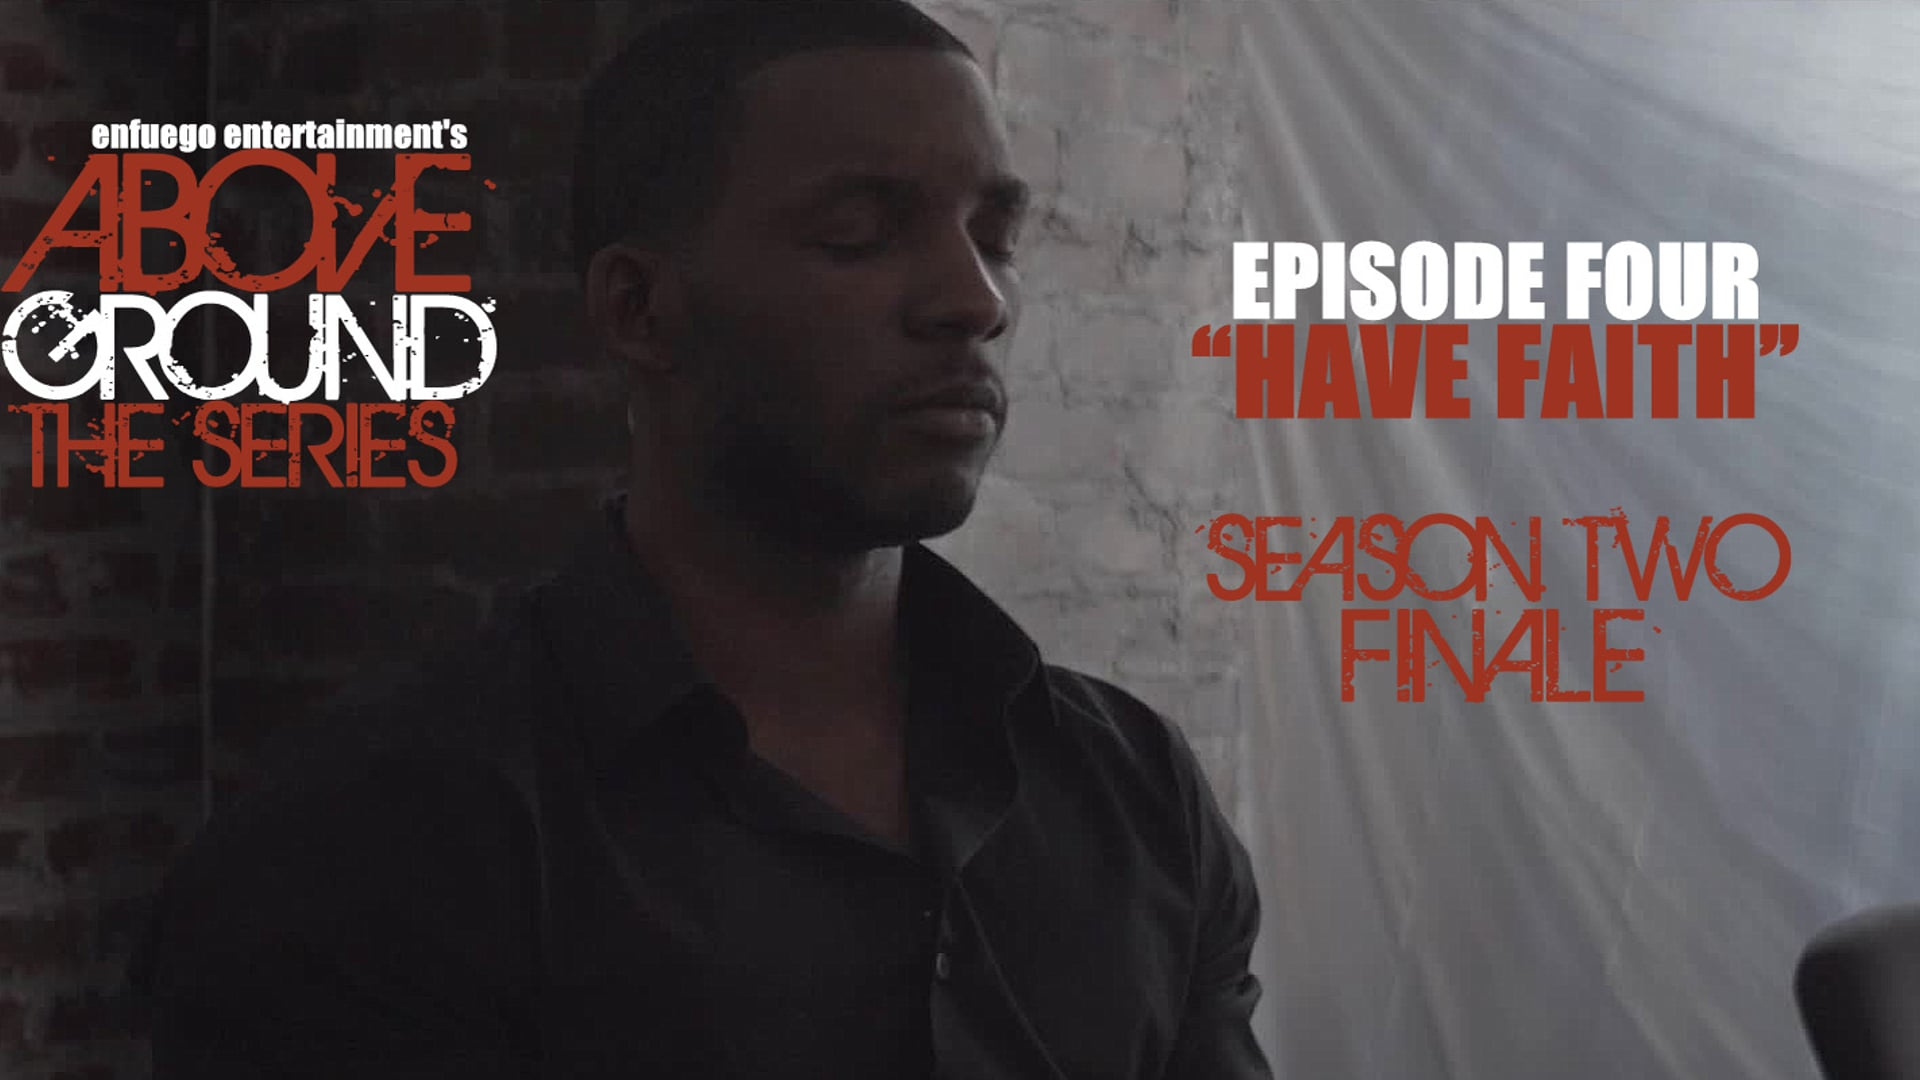 """AboveGround The Series - Ep. 2.4 """"Have Faith"""" Season Two Finale"""